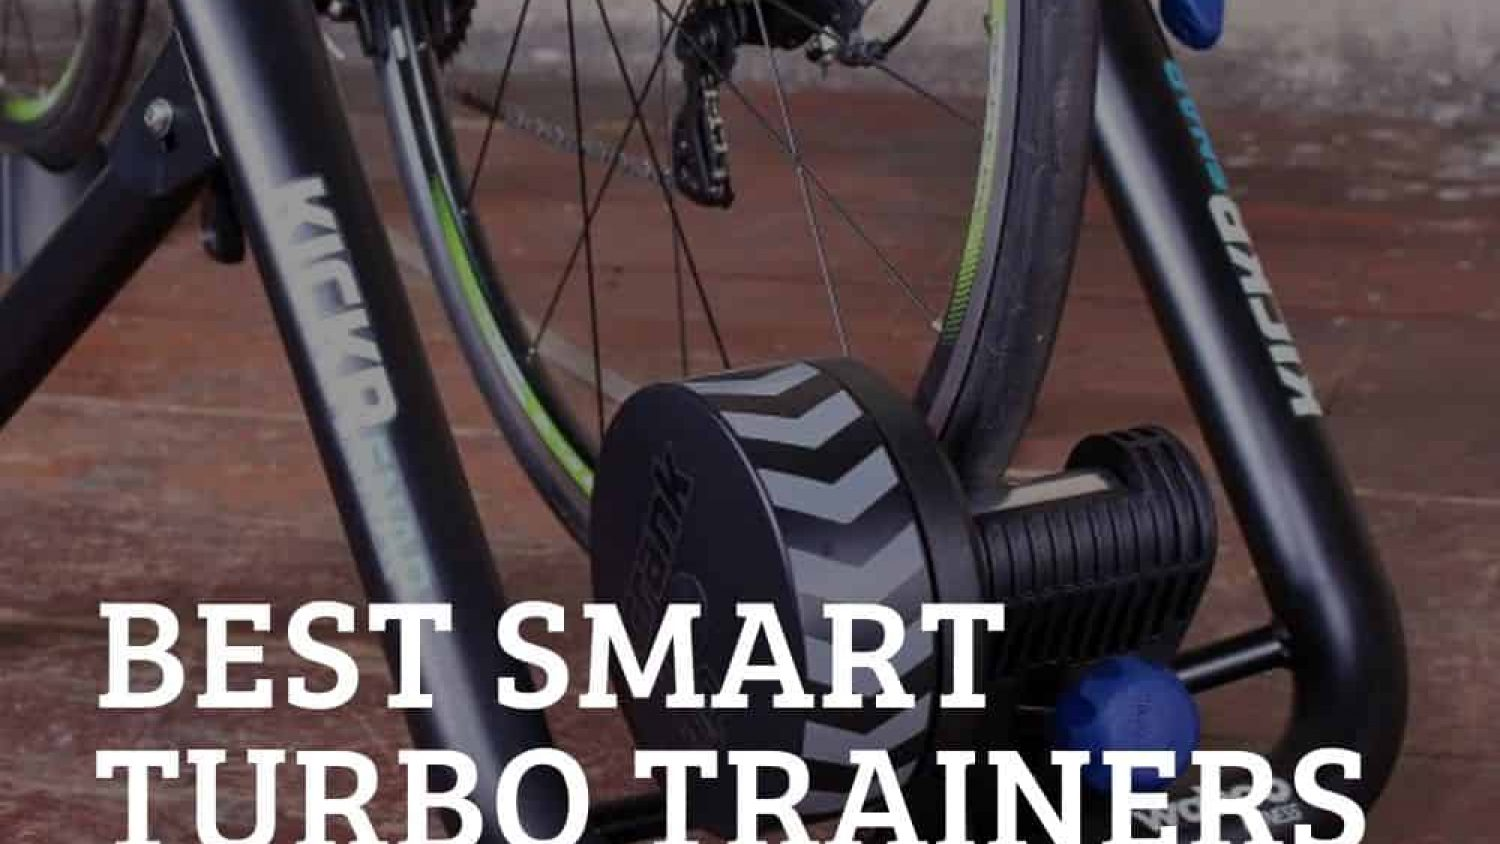 6 of the Best Smart Turbo Trainers To Buy Now